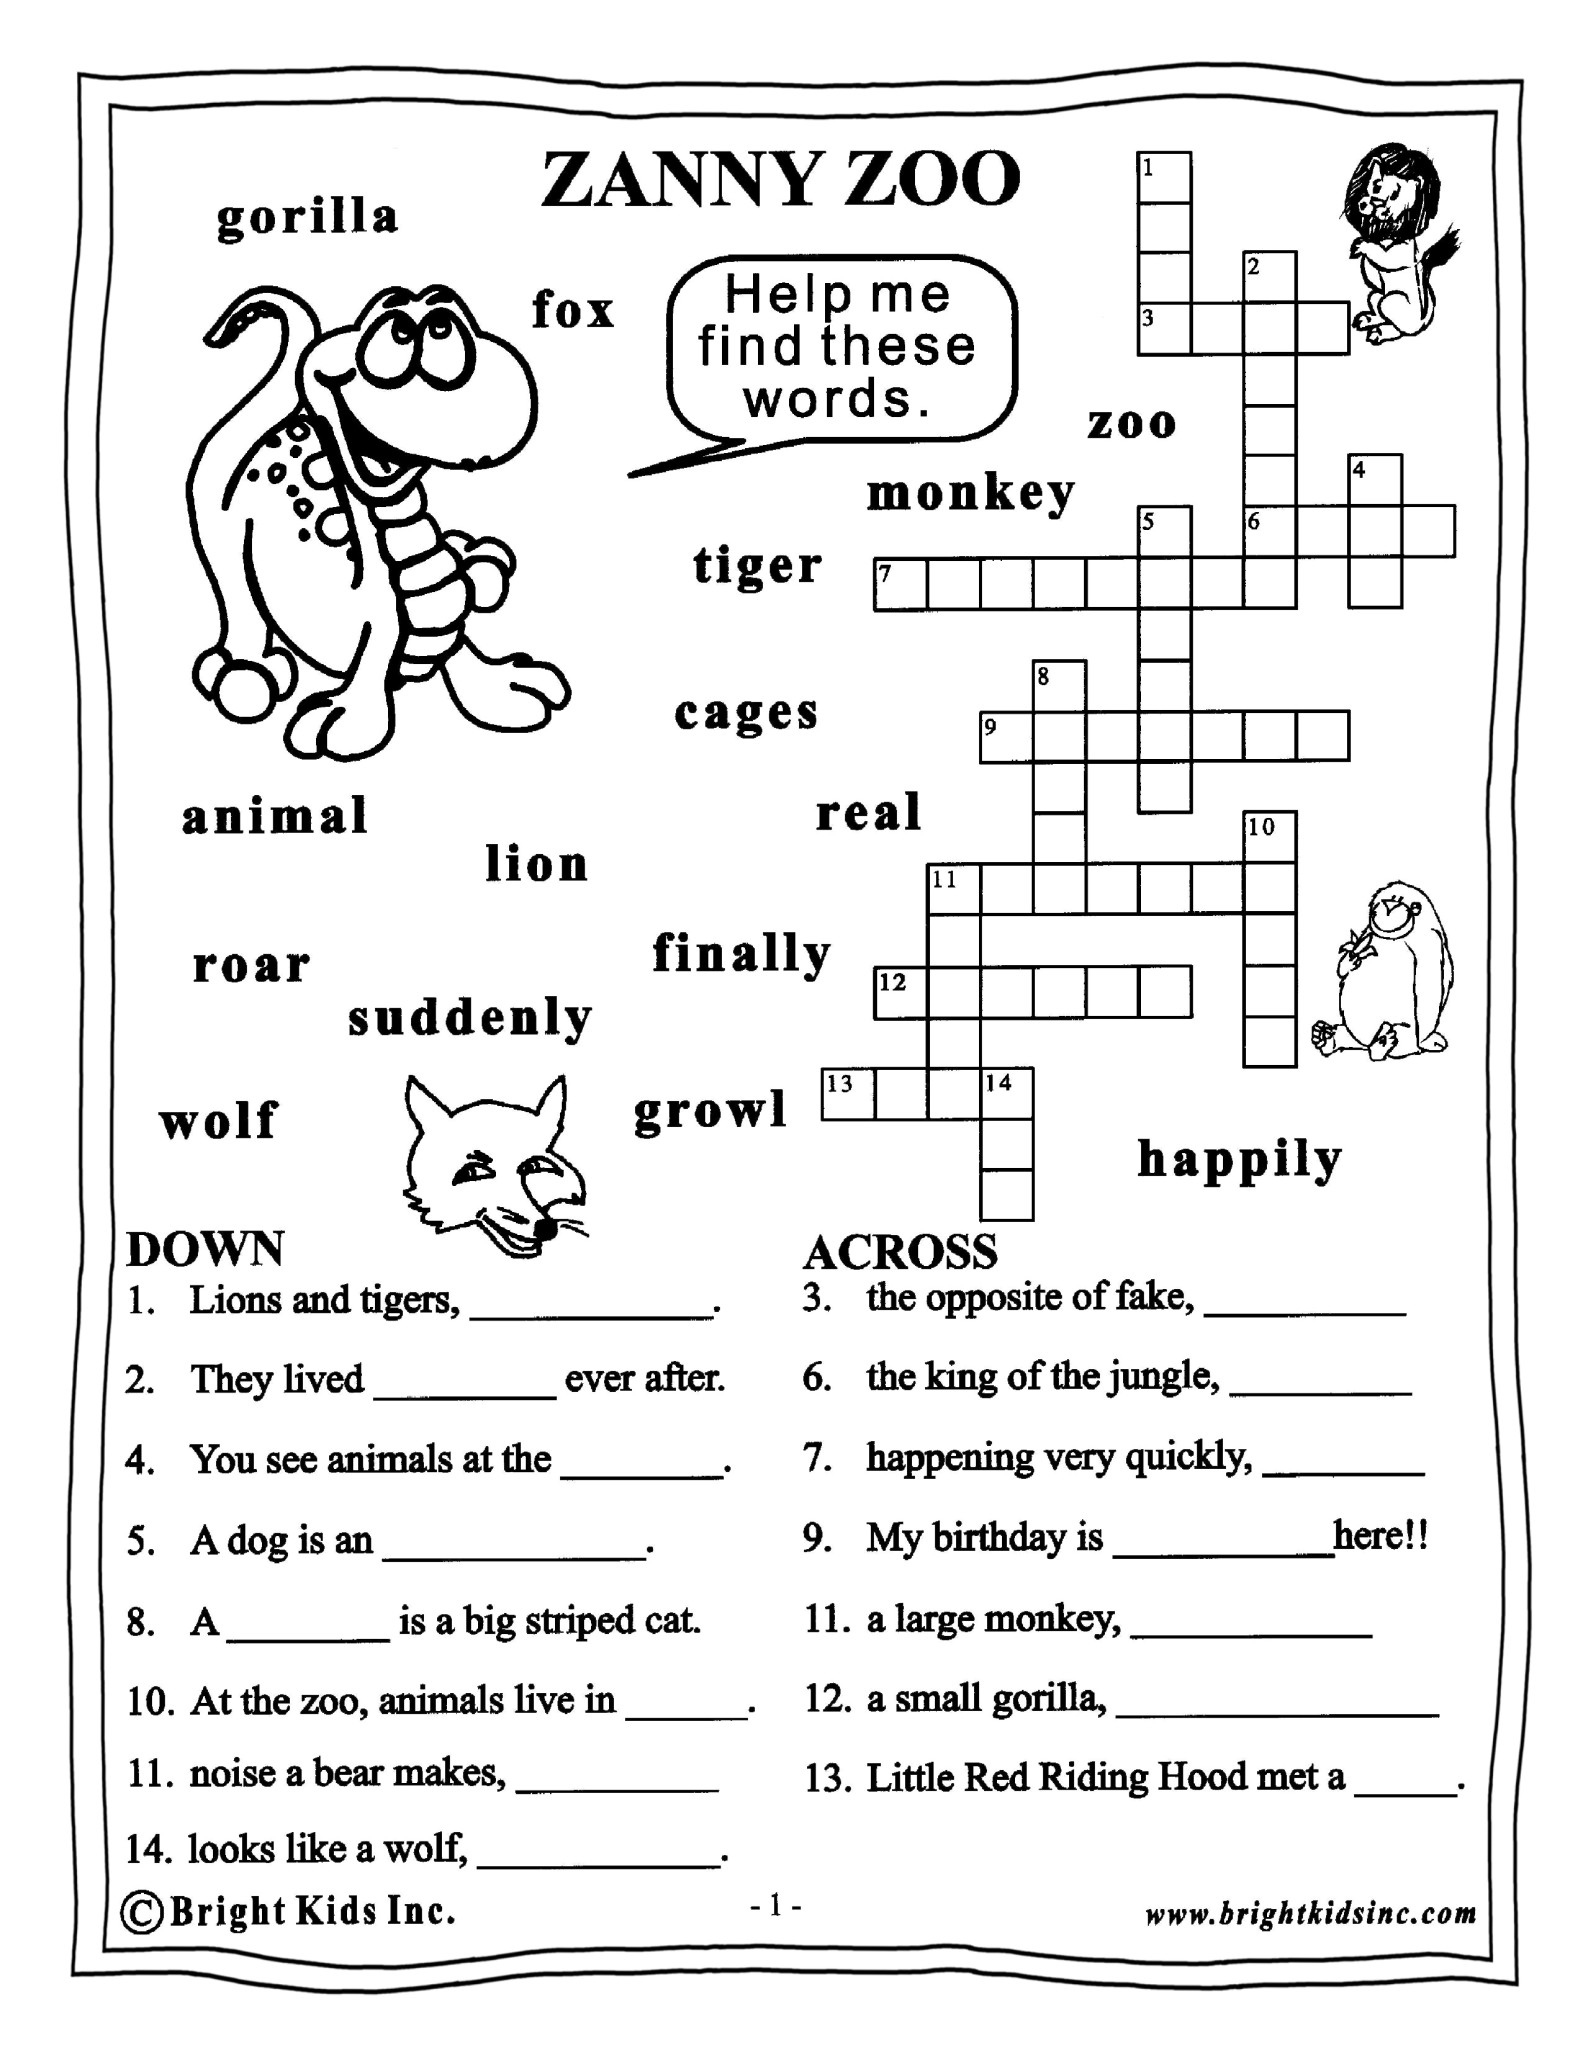 Worksheets English Activities For Grade 3 Students grade 3 english word power workout